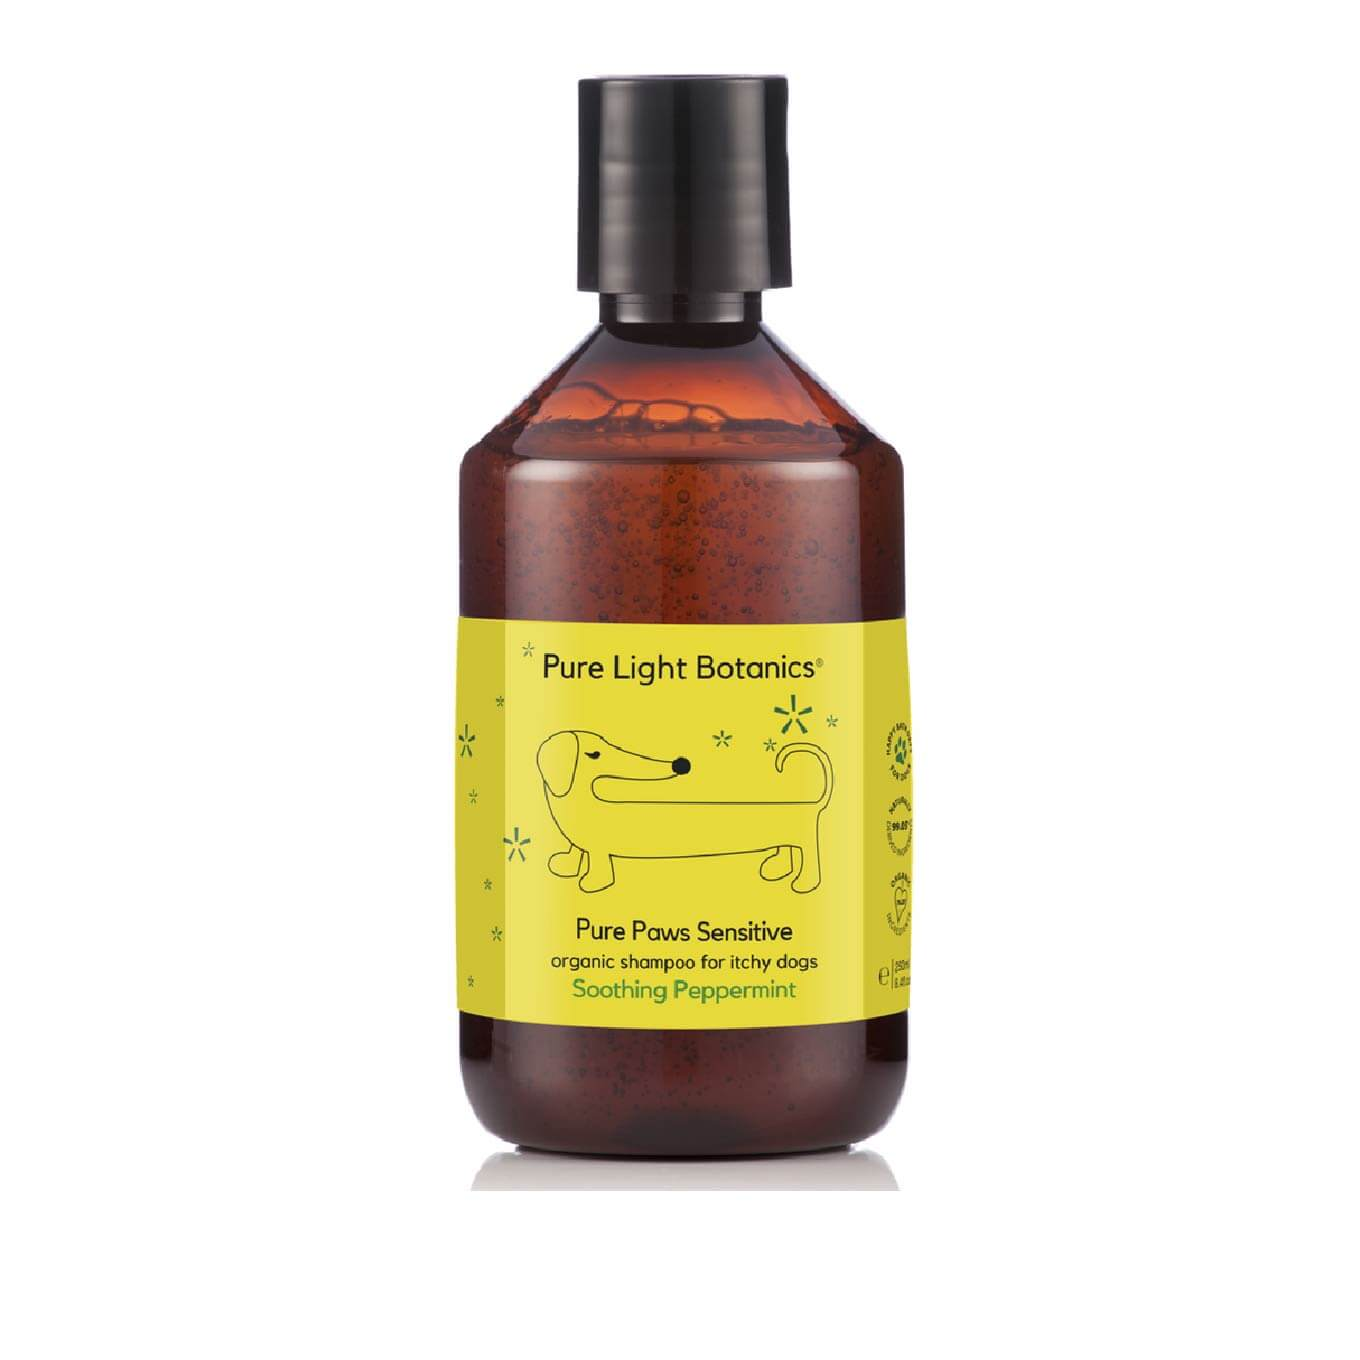 Pure Light Botanics Itchy Skin Peppermint Organic Dog Shampoo - Dogs, Flea&Tick, Grooming Essentials, Hot Spots, Latte, Paw Licking, Pure Light Botanics, Skin, Starter Pack, Yeast - Vanillapup - Online Pet Shop